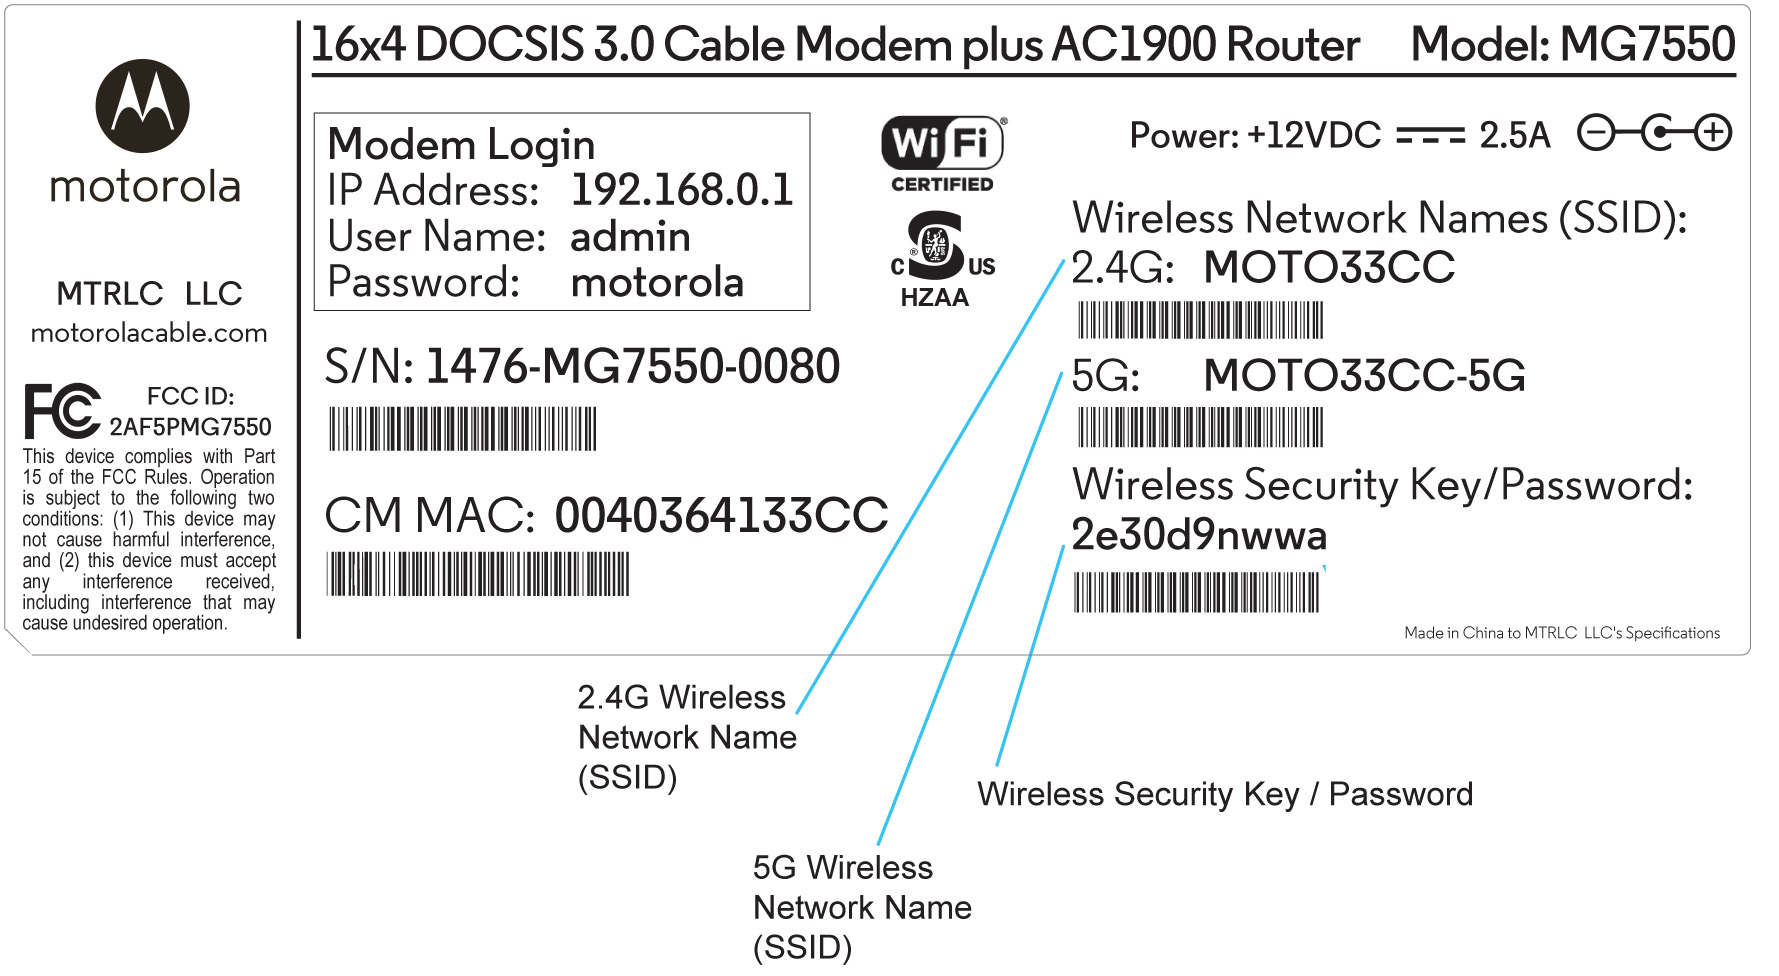 Where can I find the Wireless Network Name (SSID) and Wireless